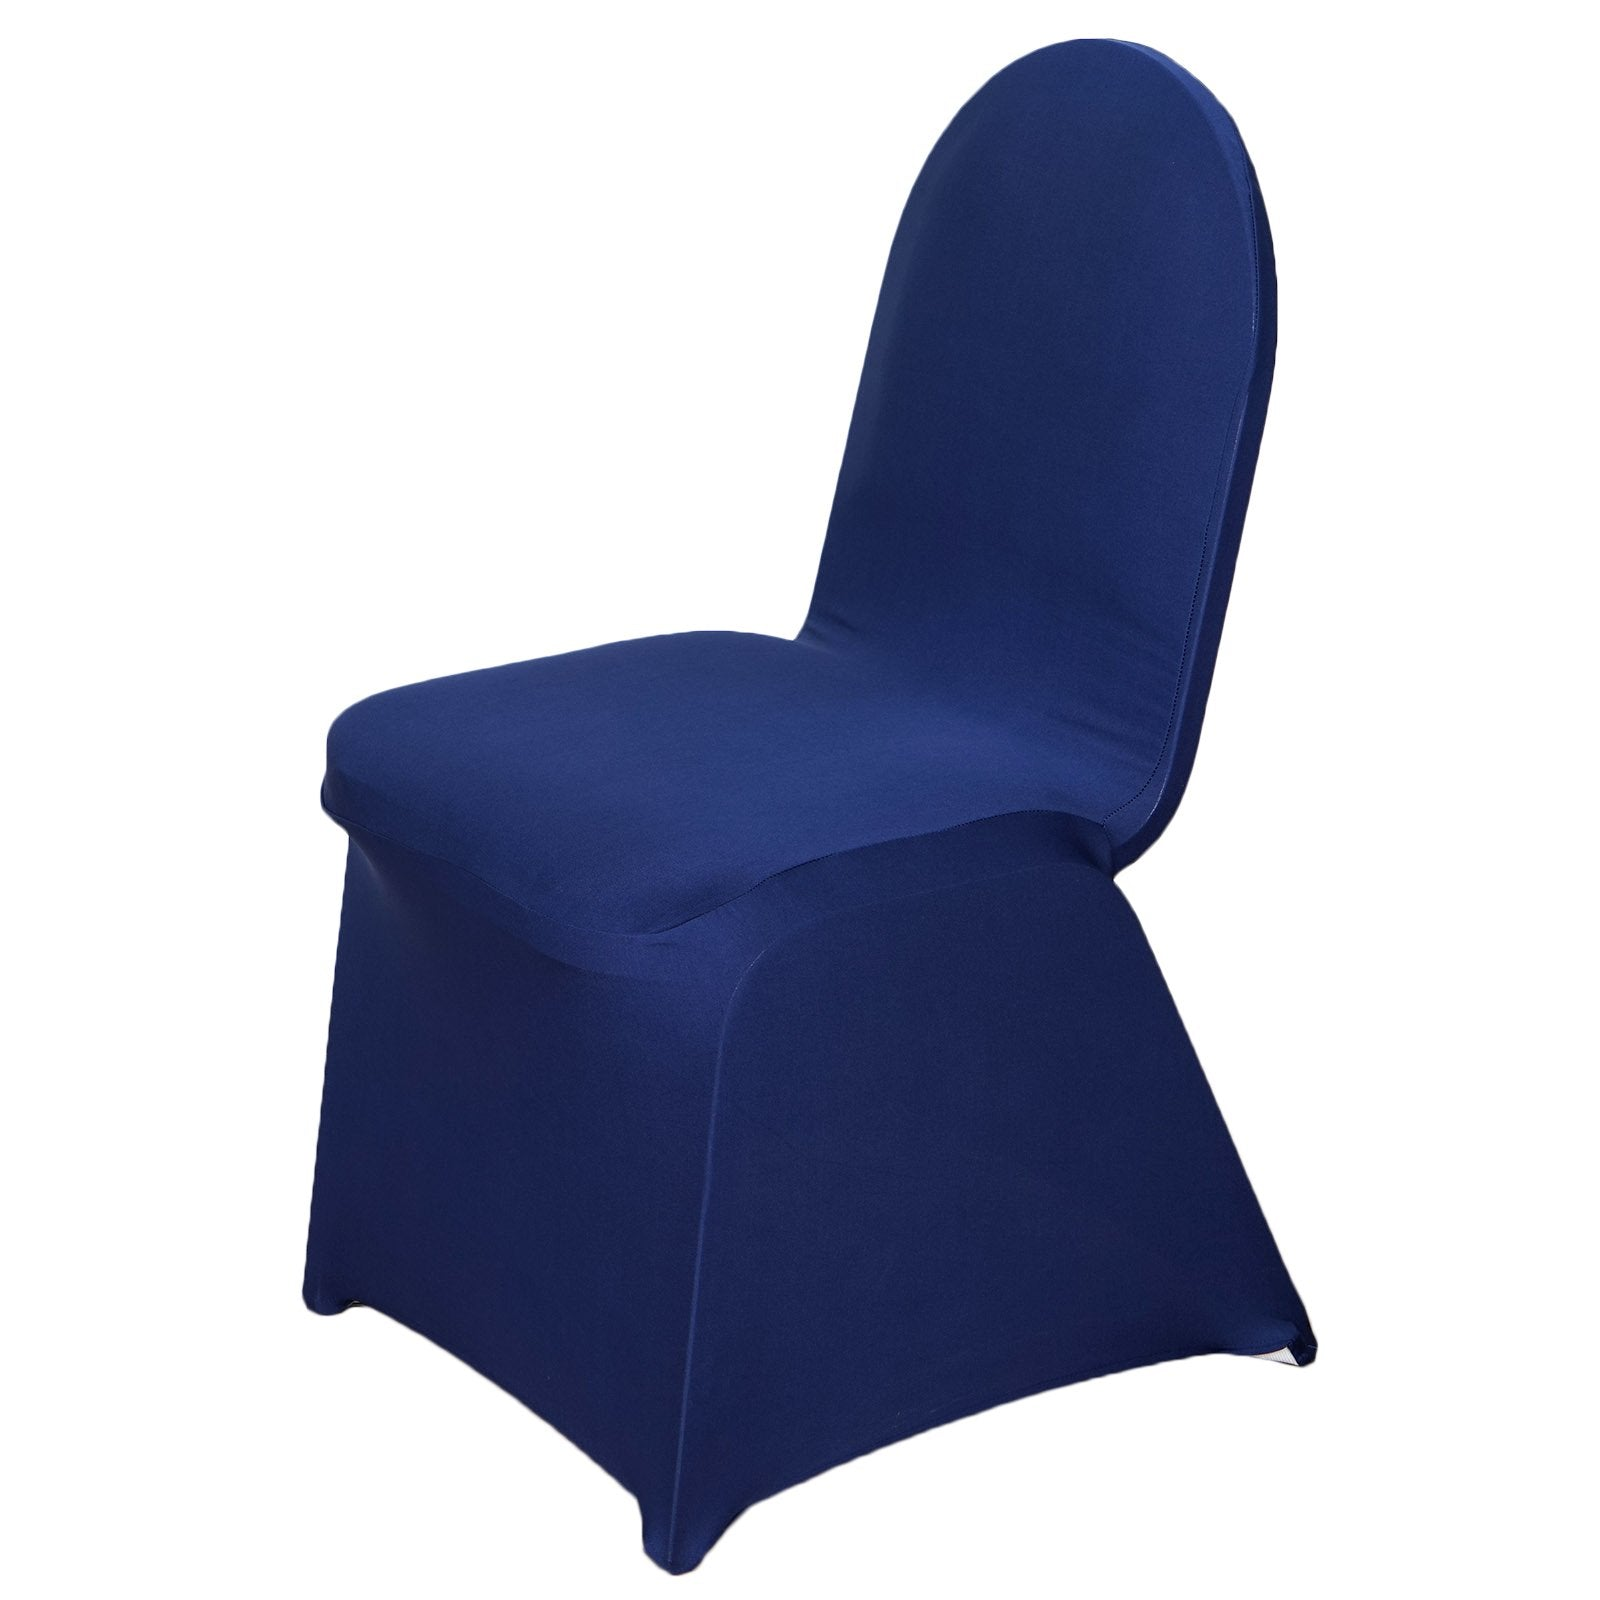 160 Gsm Navy Blue Stretch Spandex Banquet Chair Cover With Foot